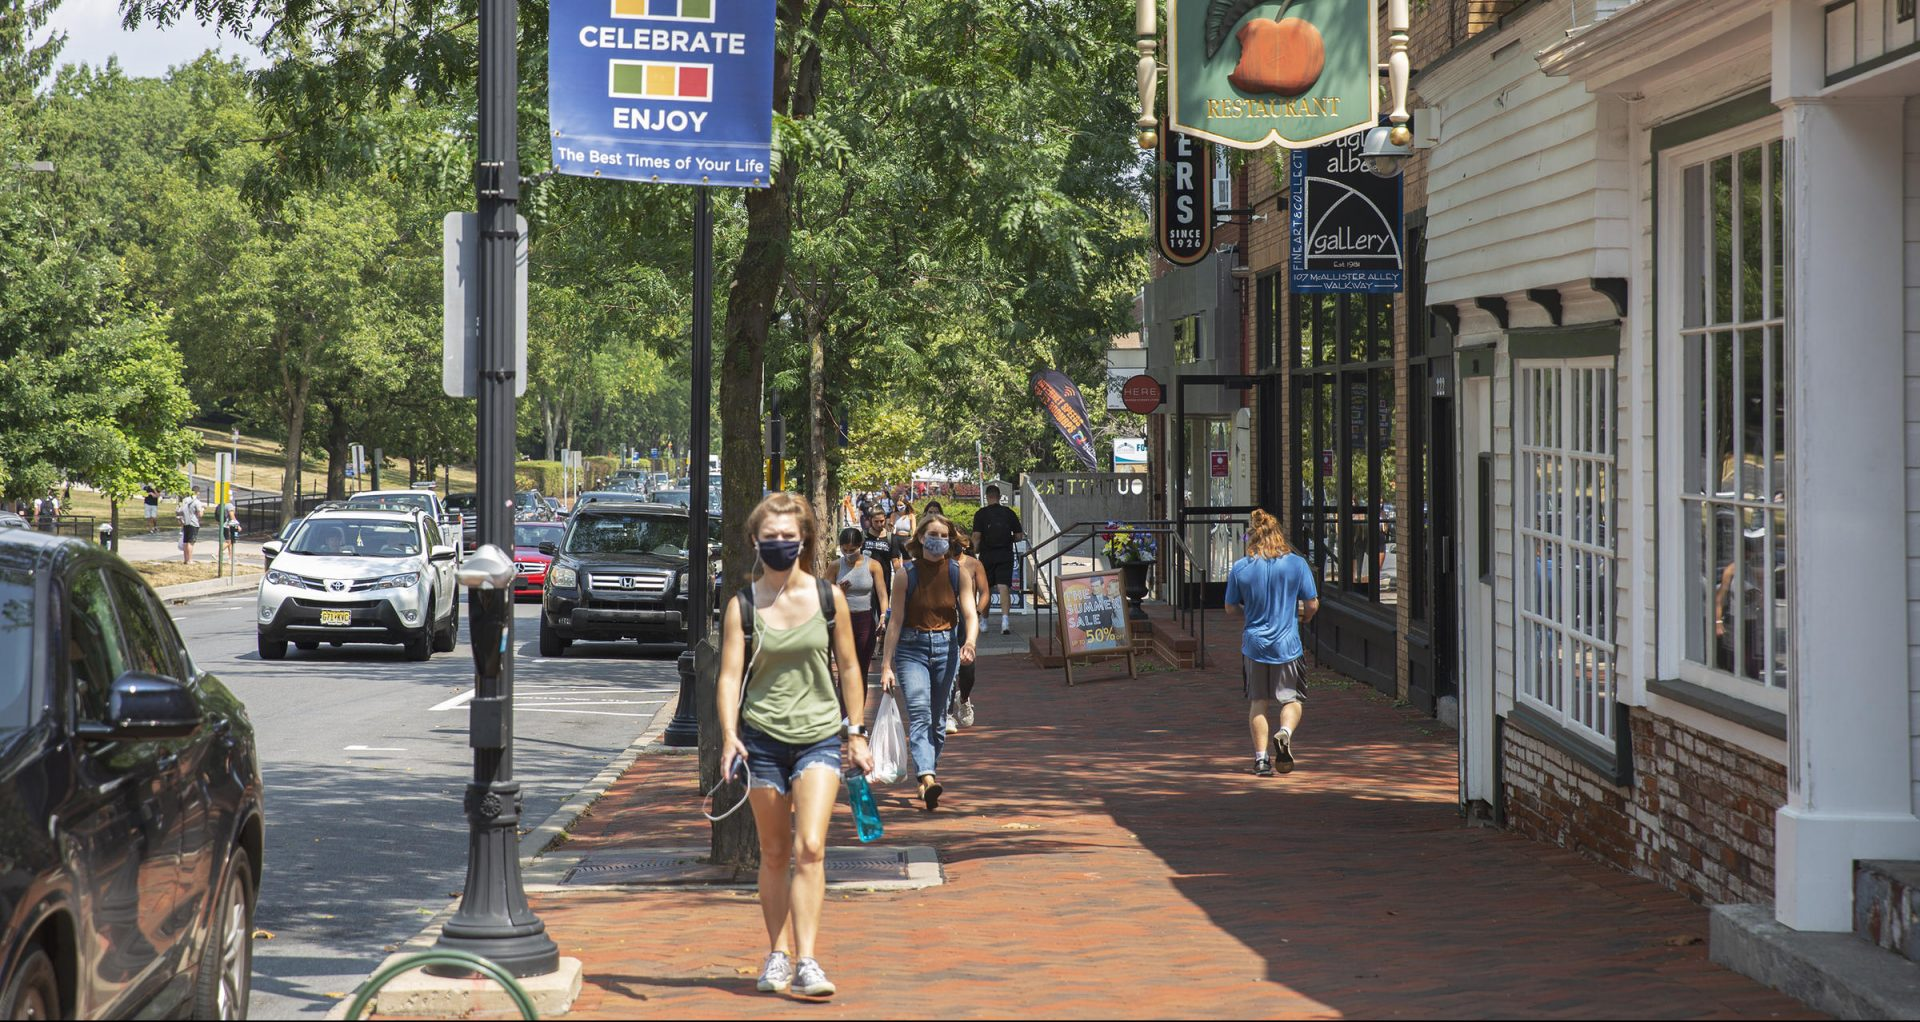 A proposed change to what counts as a metropolitan area could have big impacts on small metro towns like State College.